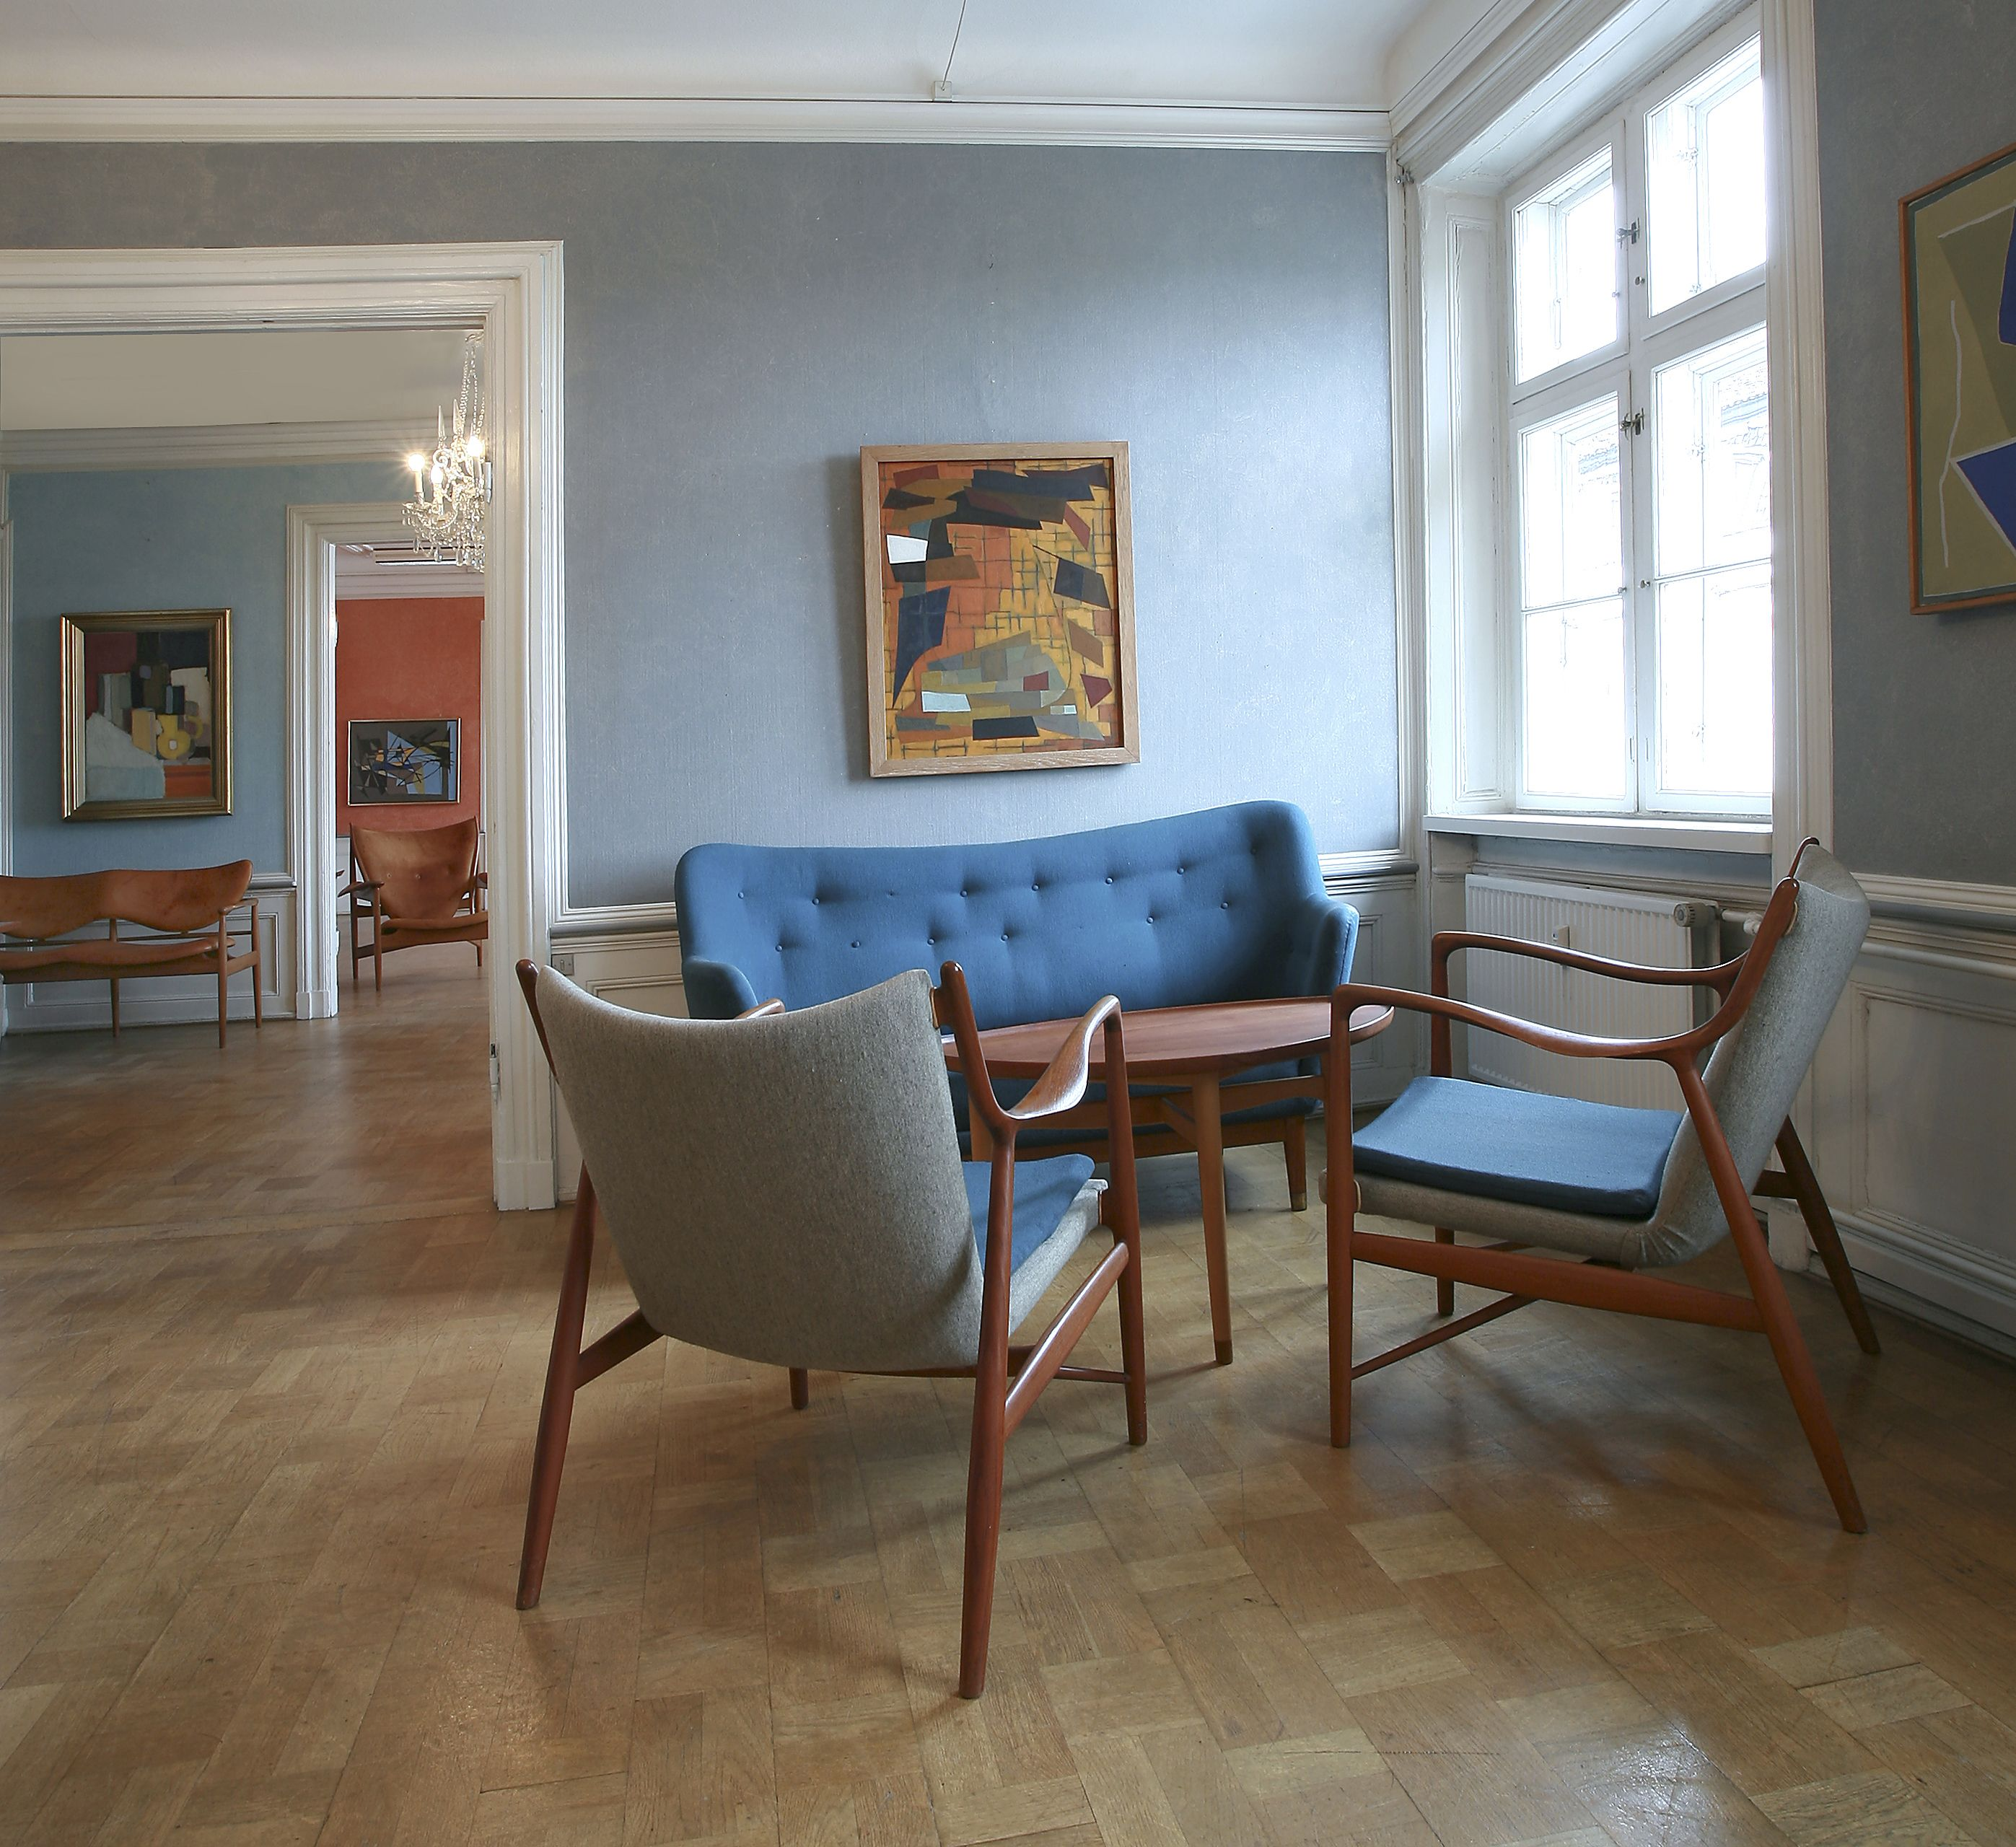 Interior At The Auction House With Furniture By Finn Juhl And Paintings Vilhelm Lundstrm